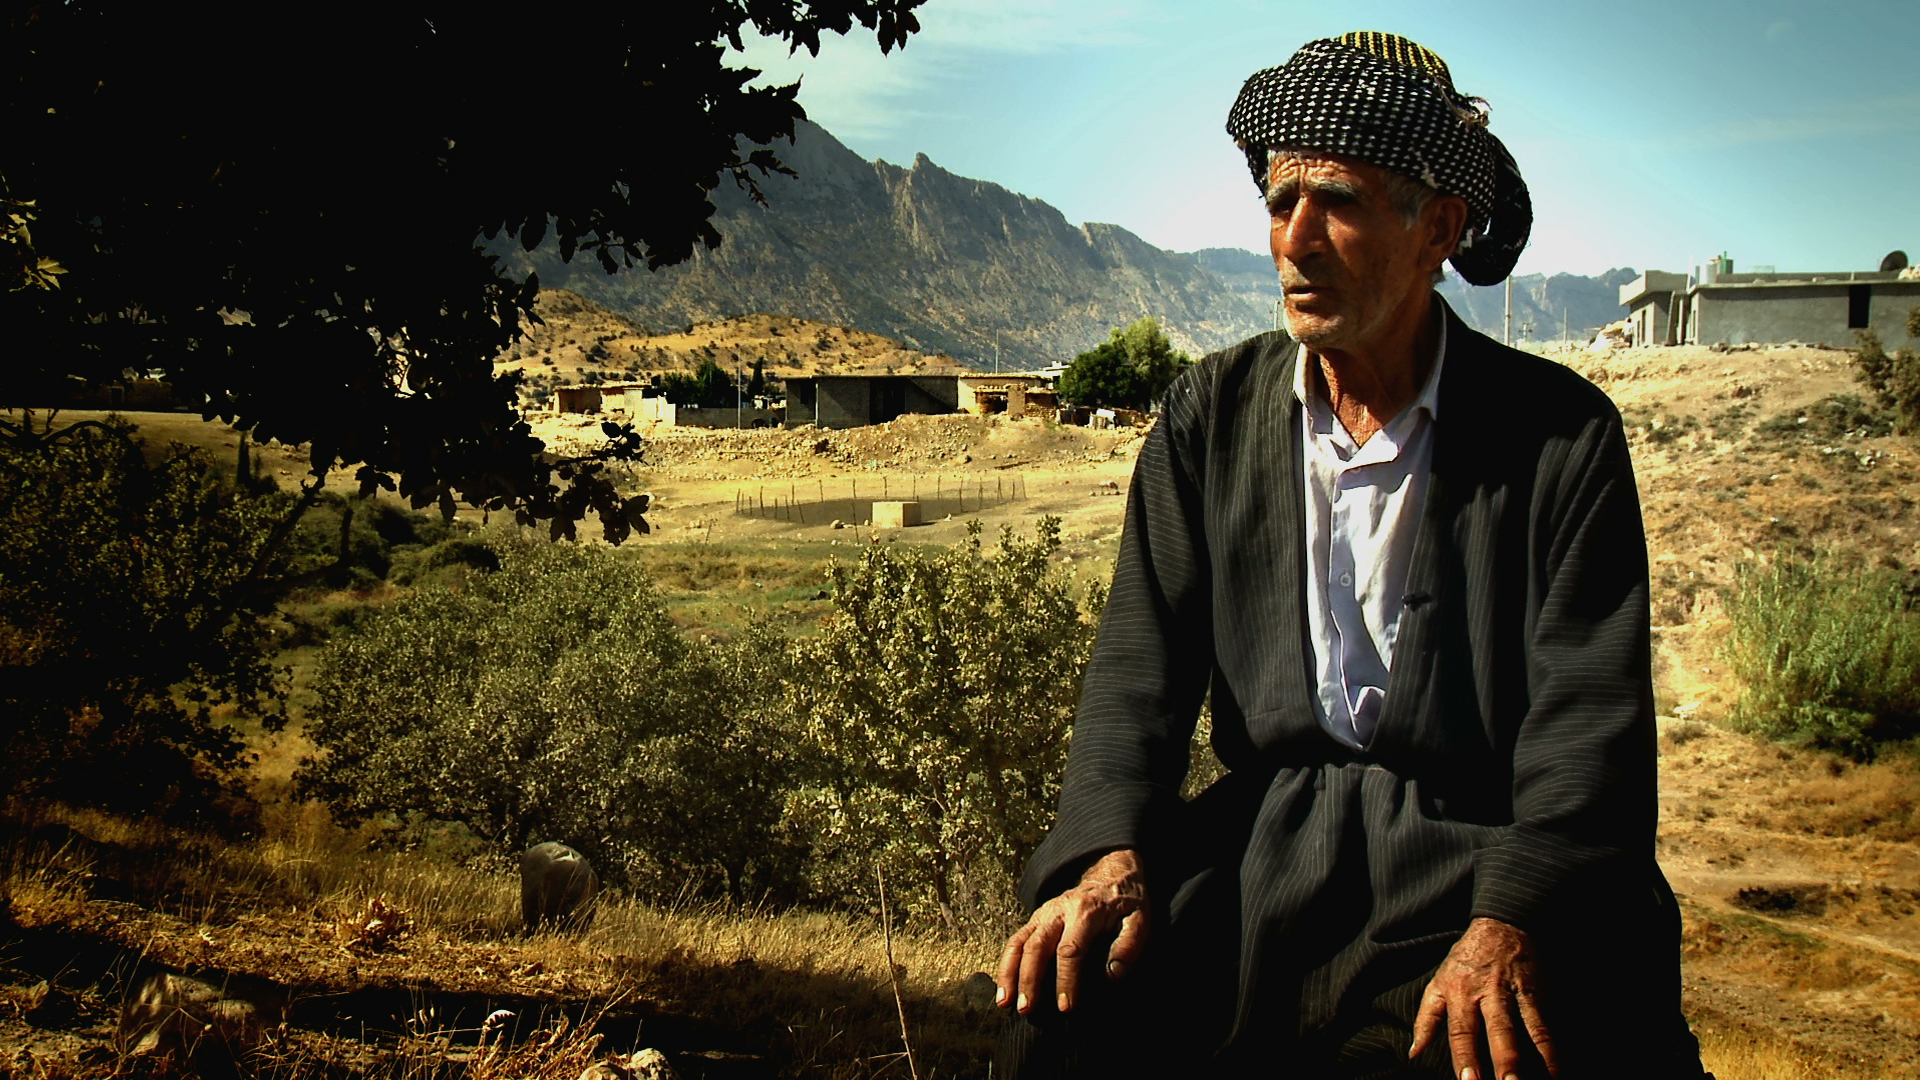 MAHMOUD RASUL MUSTAFA lost his wife, three sons and two daughters during Anfal. After the Kurdish uprising in 1991 he returned home to Aliawa village in the Qaradagh region but struggled to rebuild his life. In 2006 he testified against Saddam Hussein at the former Iraqi leader's trial in Baghdad. 3/3.